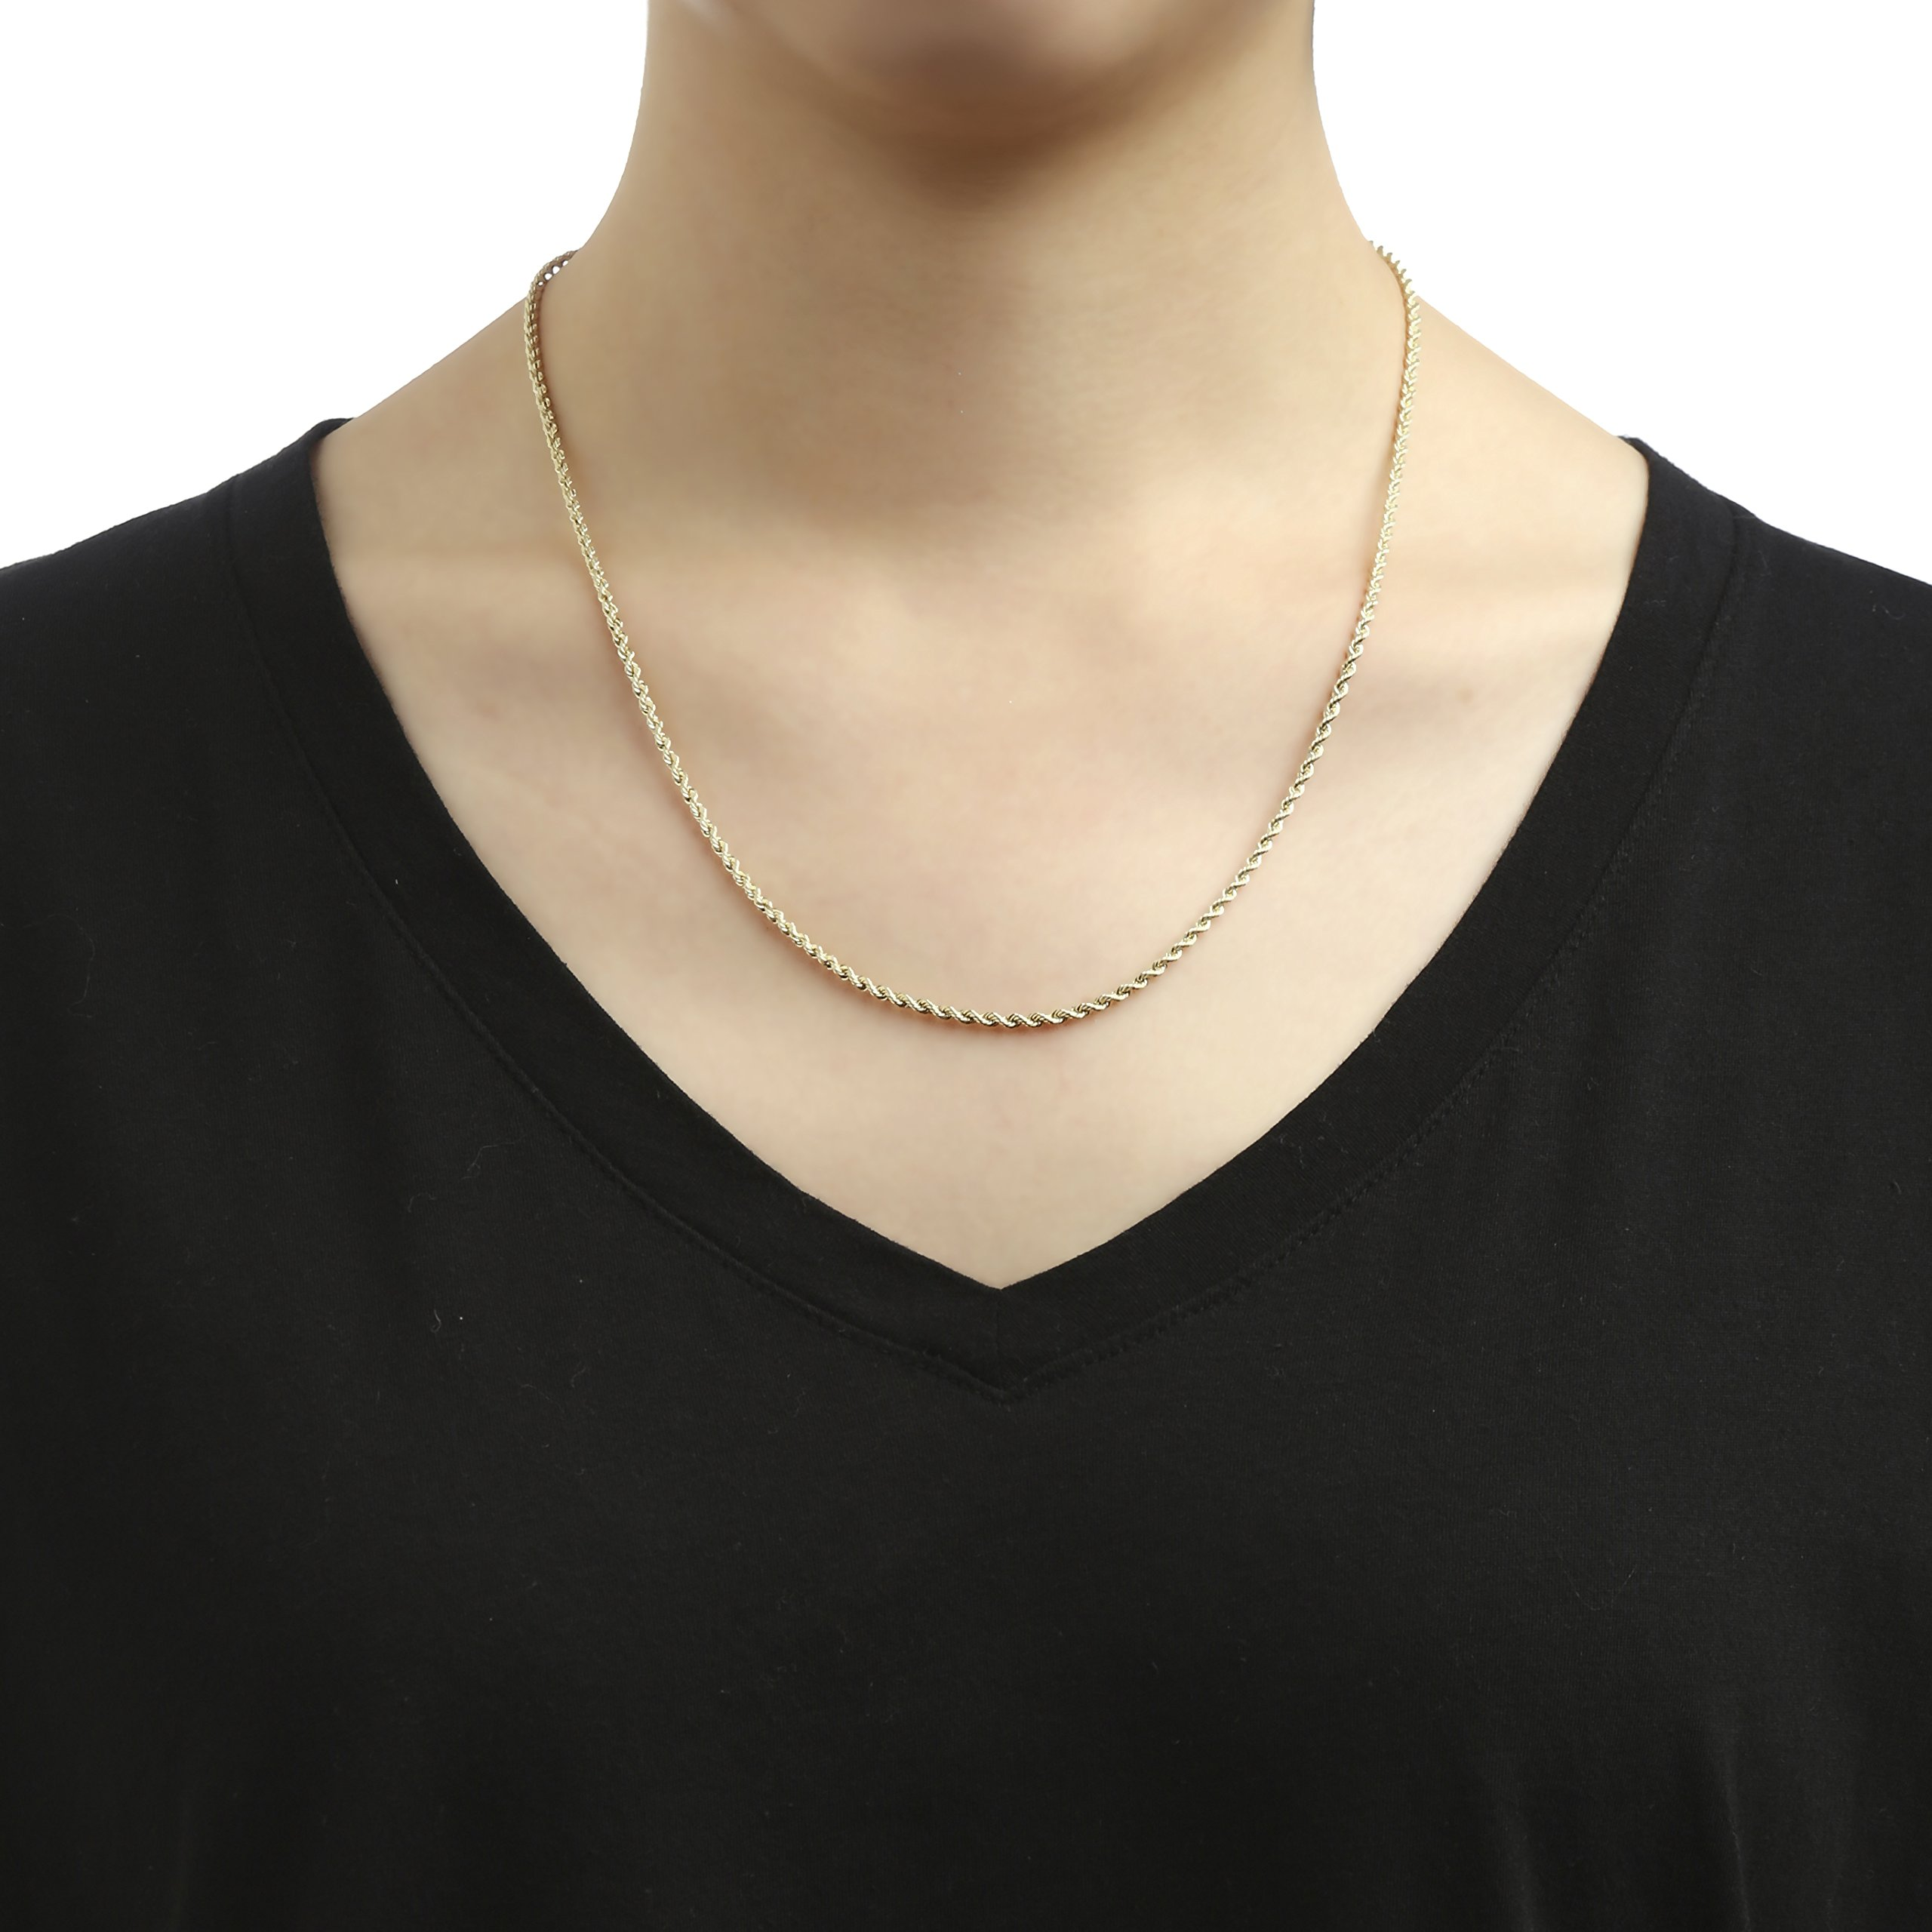 18 Inch 10k Yellow Gold Hollow Rope Chain Necklace with Lobster Claw Clasp for Women and Men, 2mm by SL Chain Collection (Image #3)